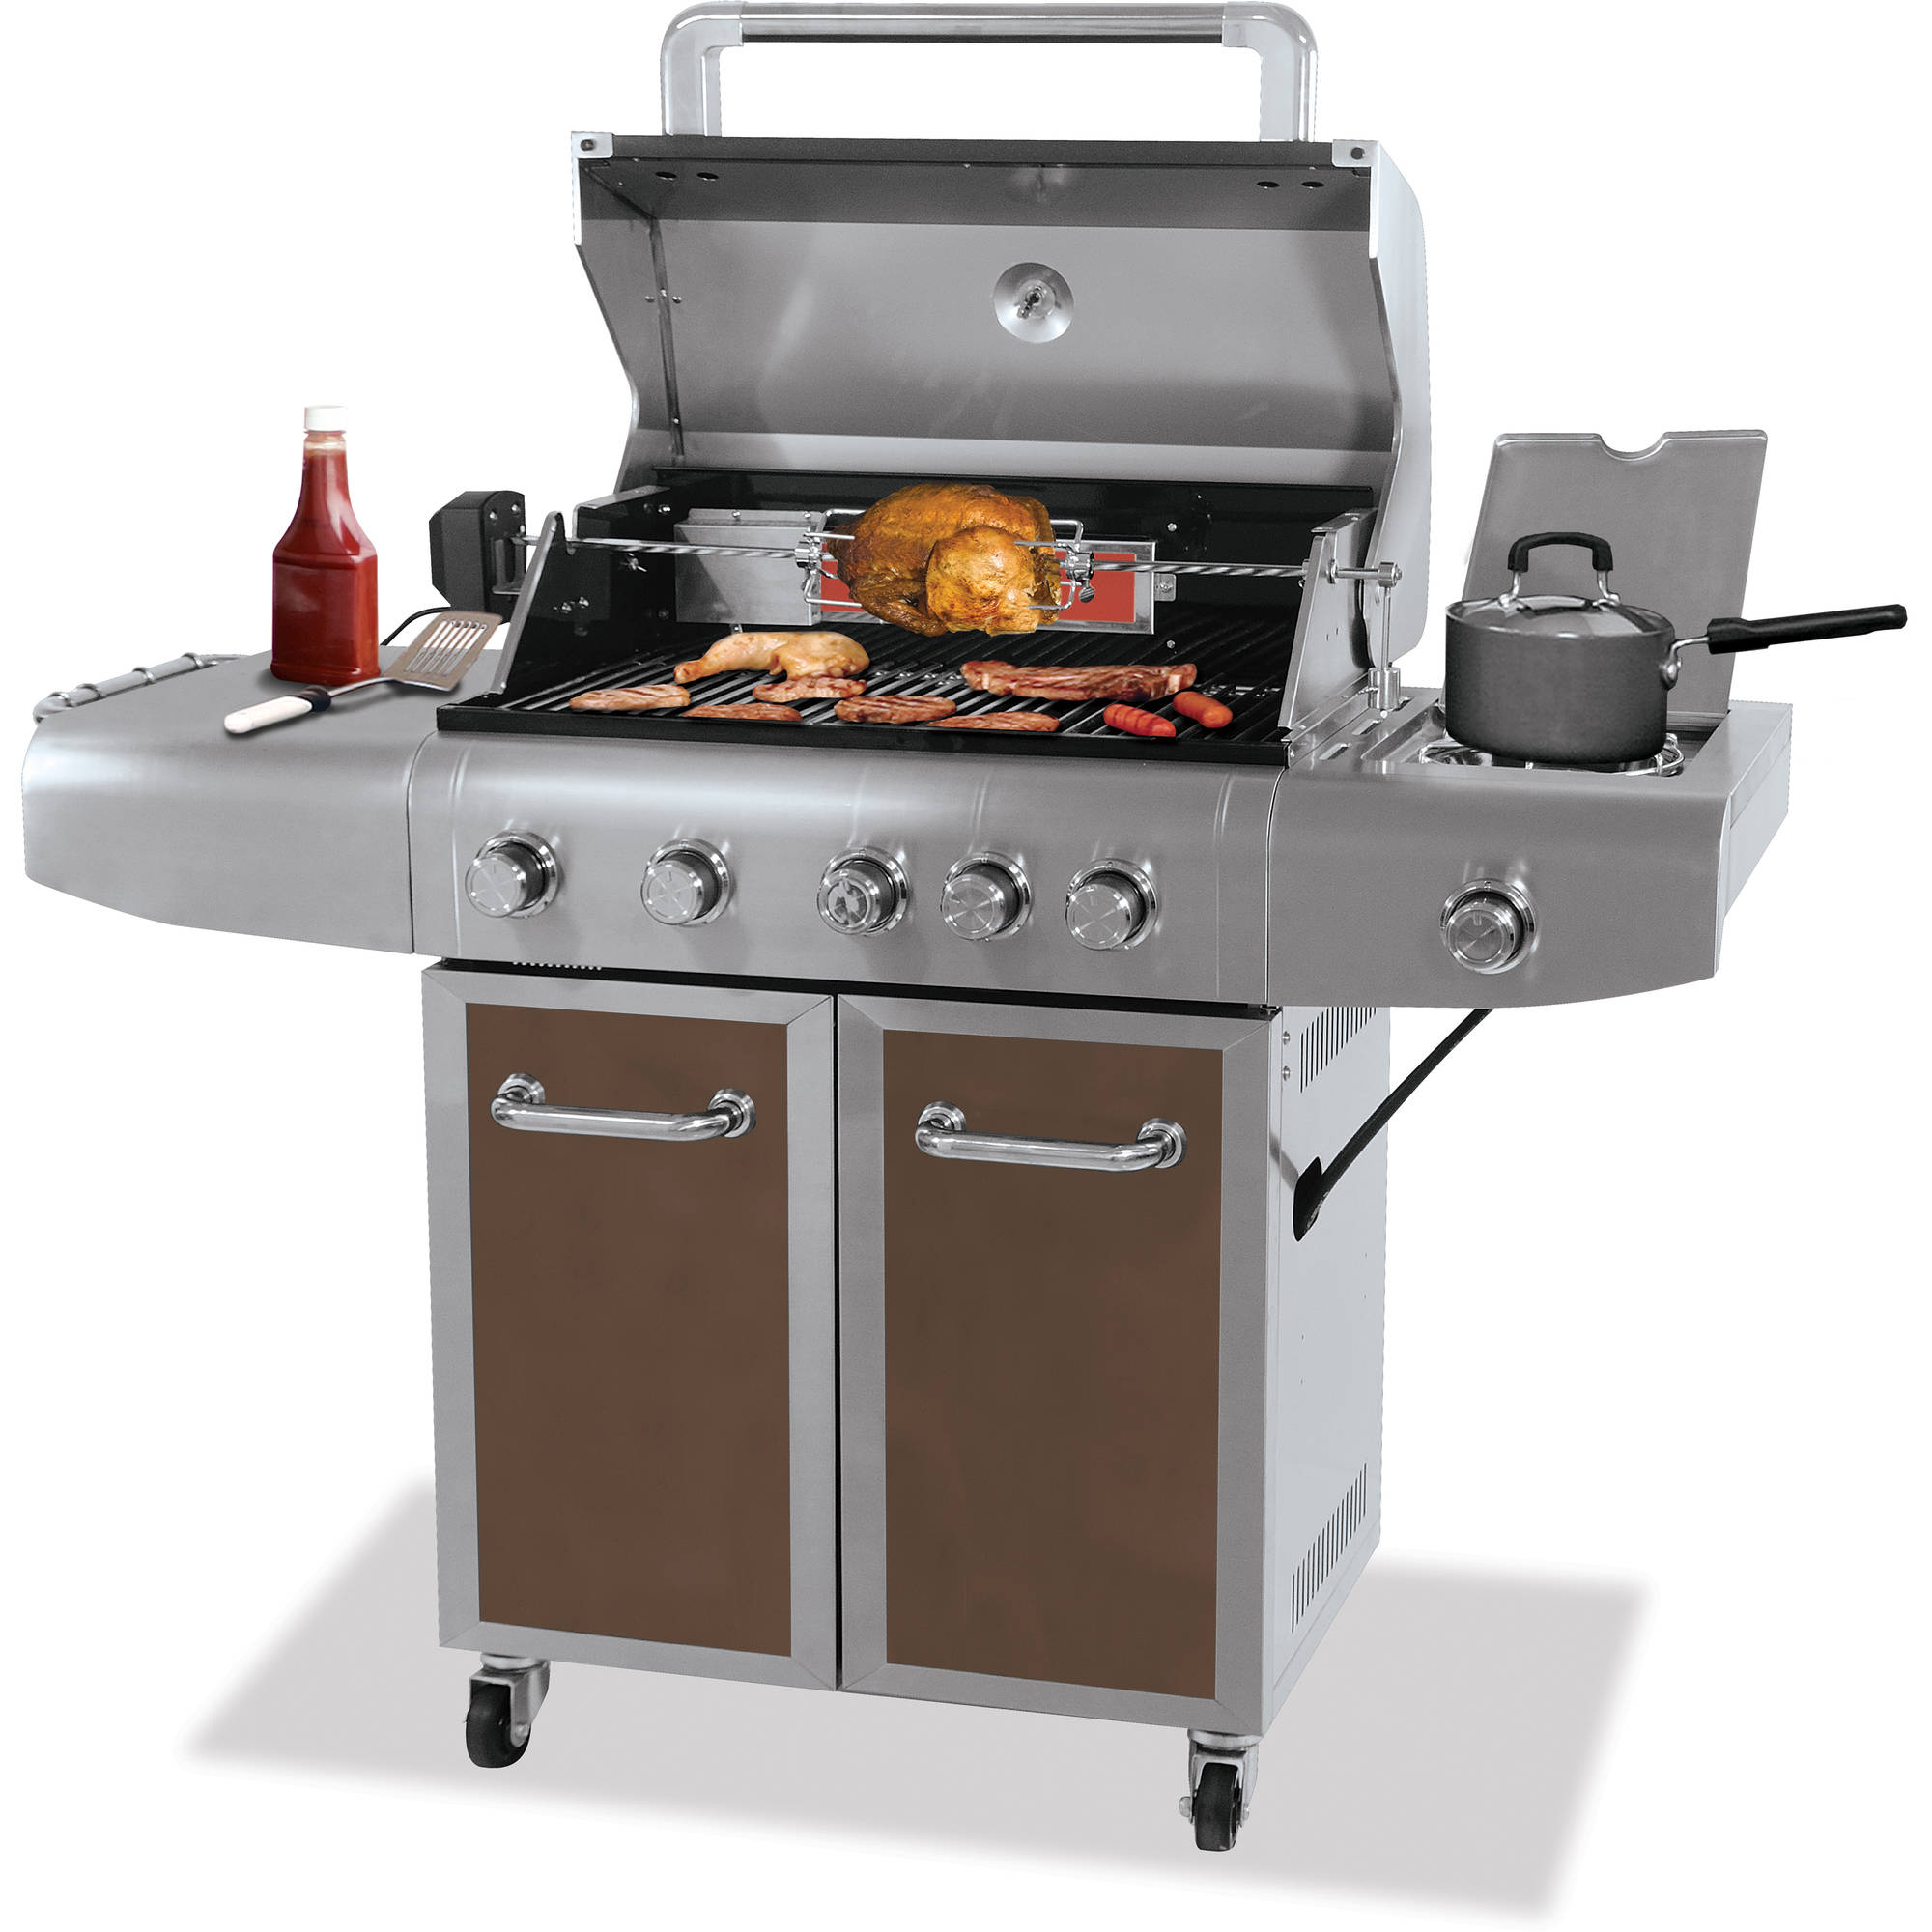 Better Homes and Gardens 5-Burner Gas Grill